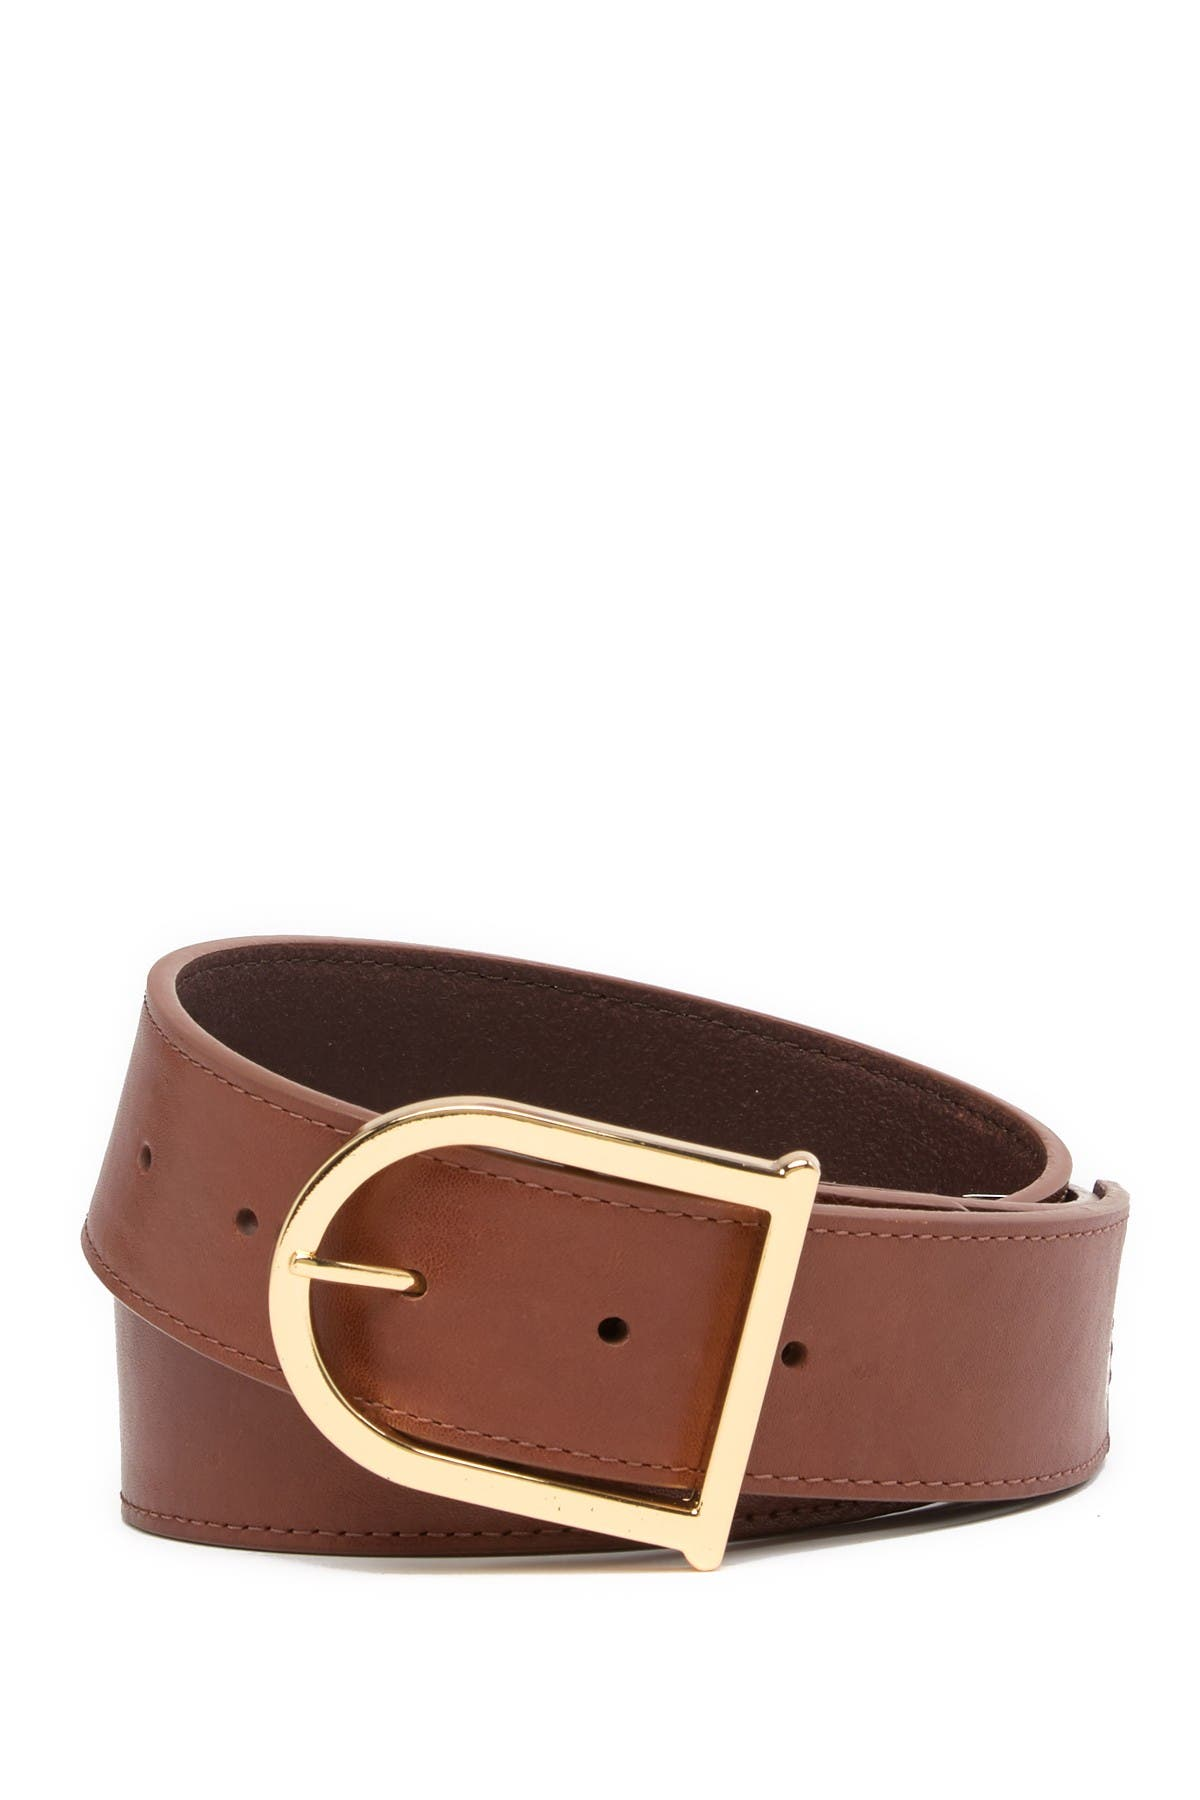 Image of Vince Camuto Smooth Leather Signature Belt